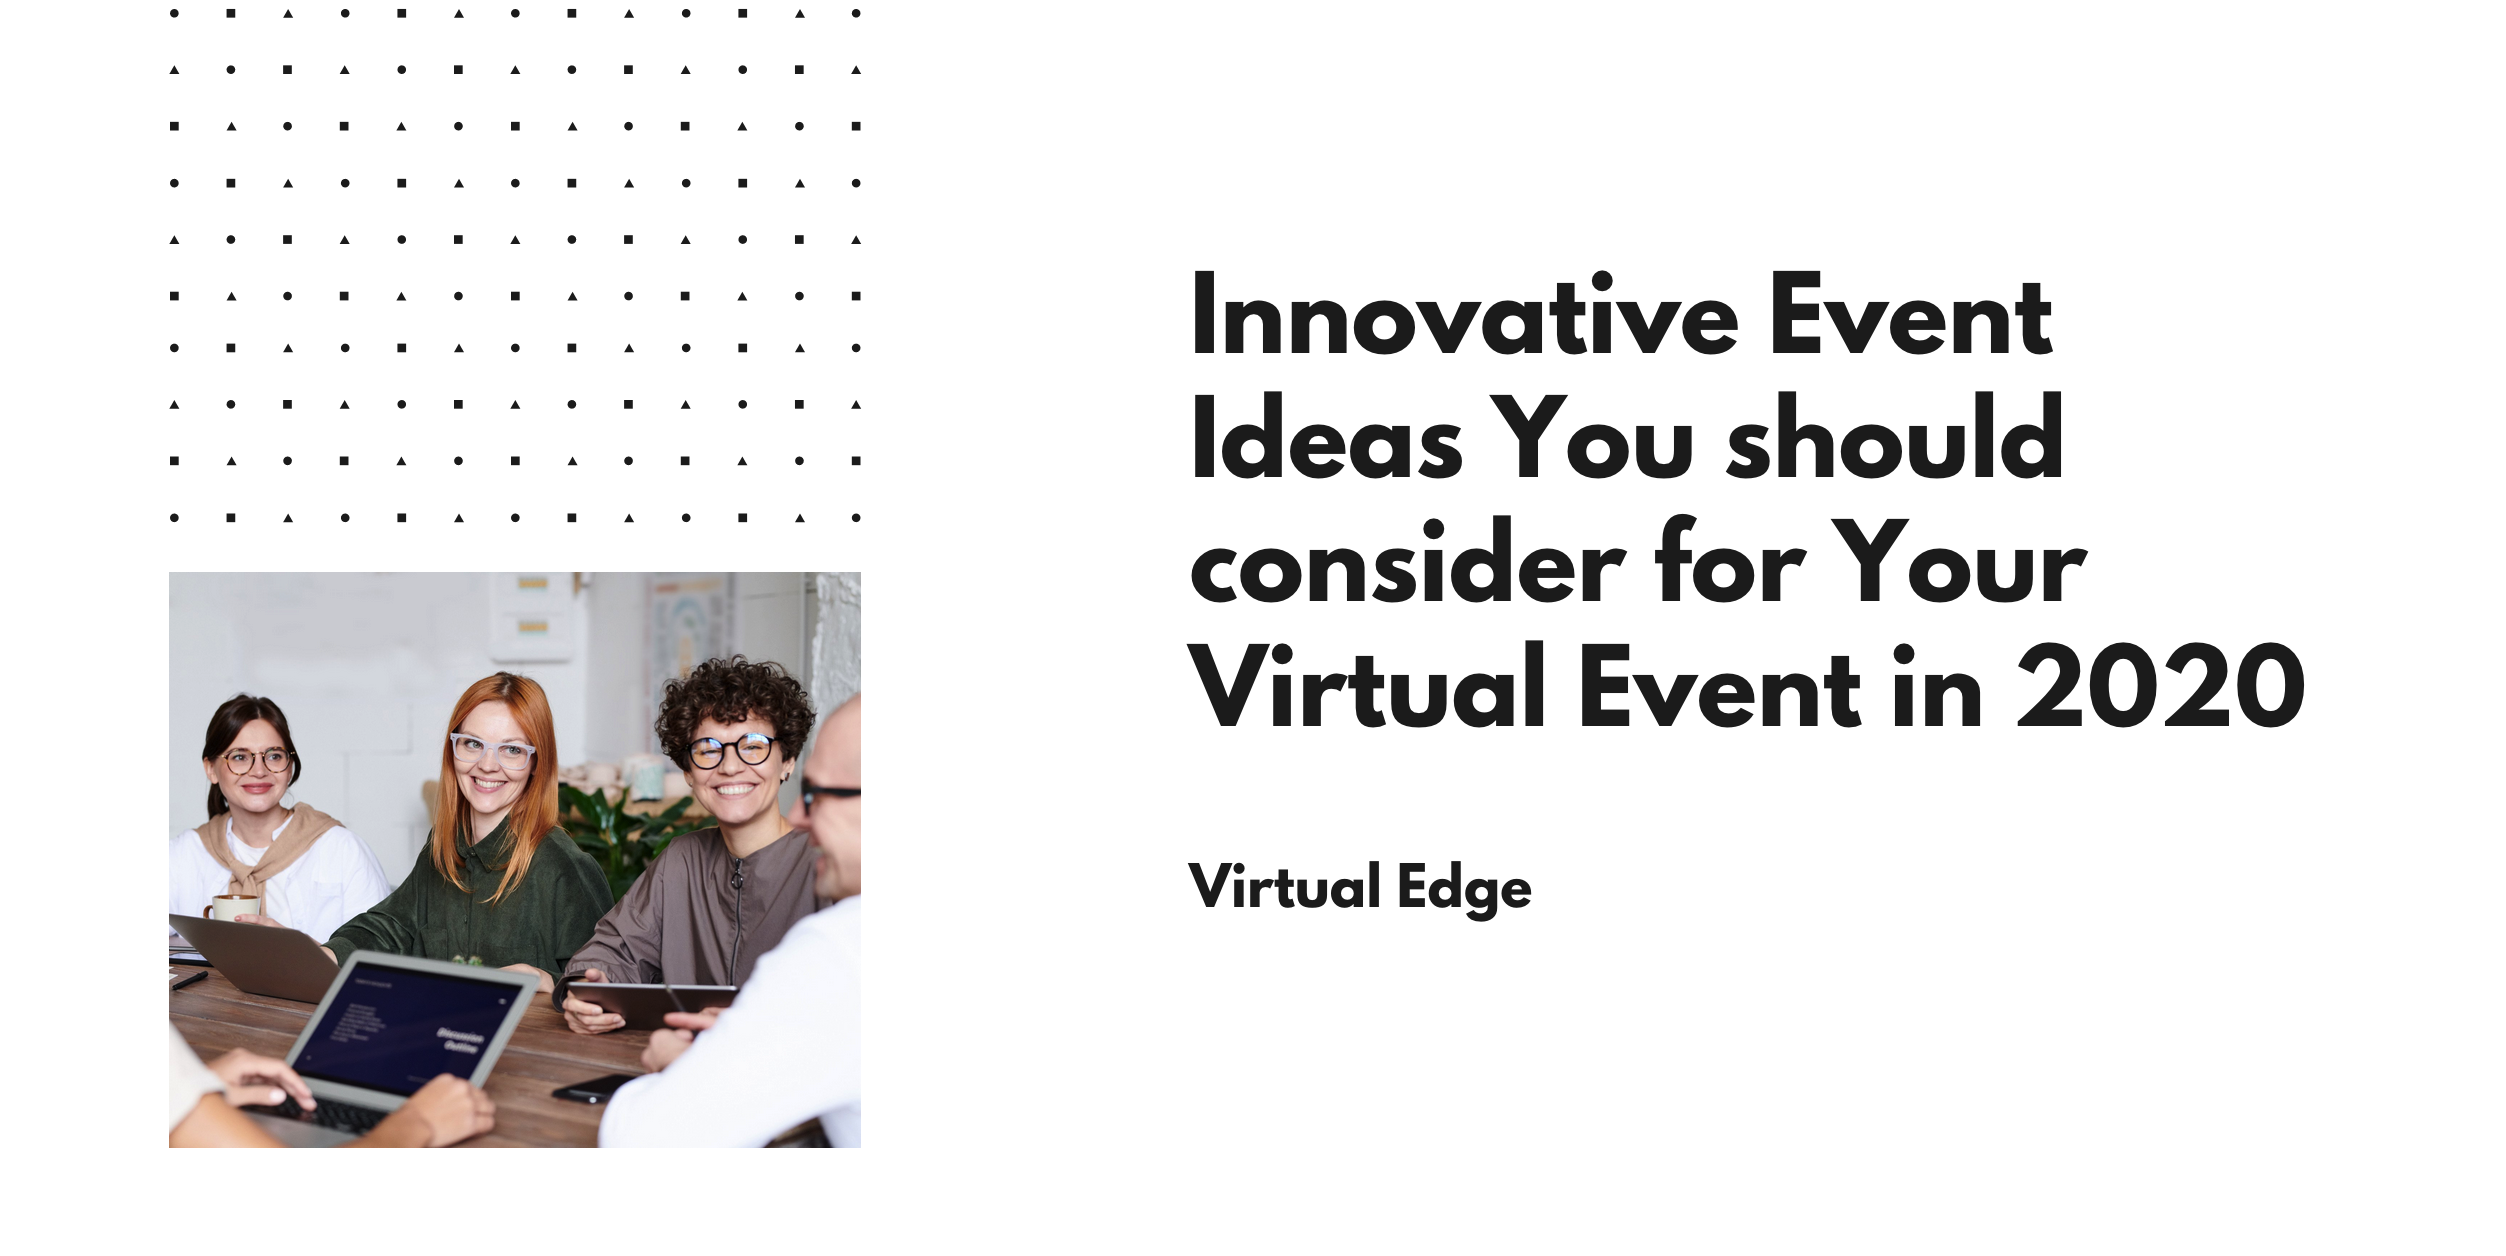 Innovative Event Ideas You should consider for Your Virtual Event in 2020